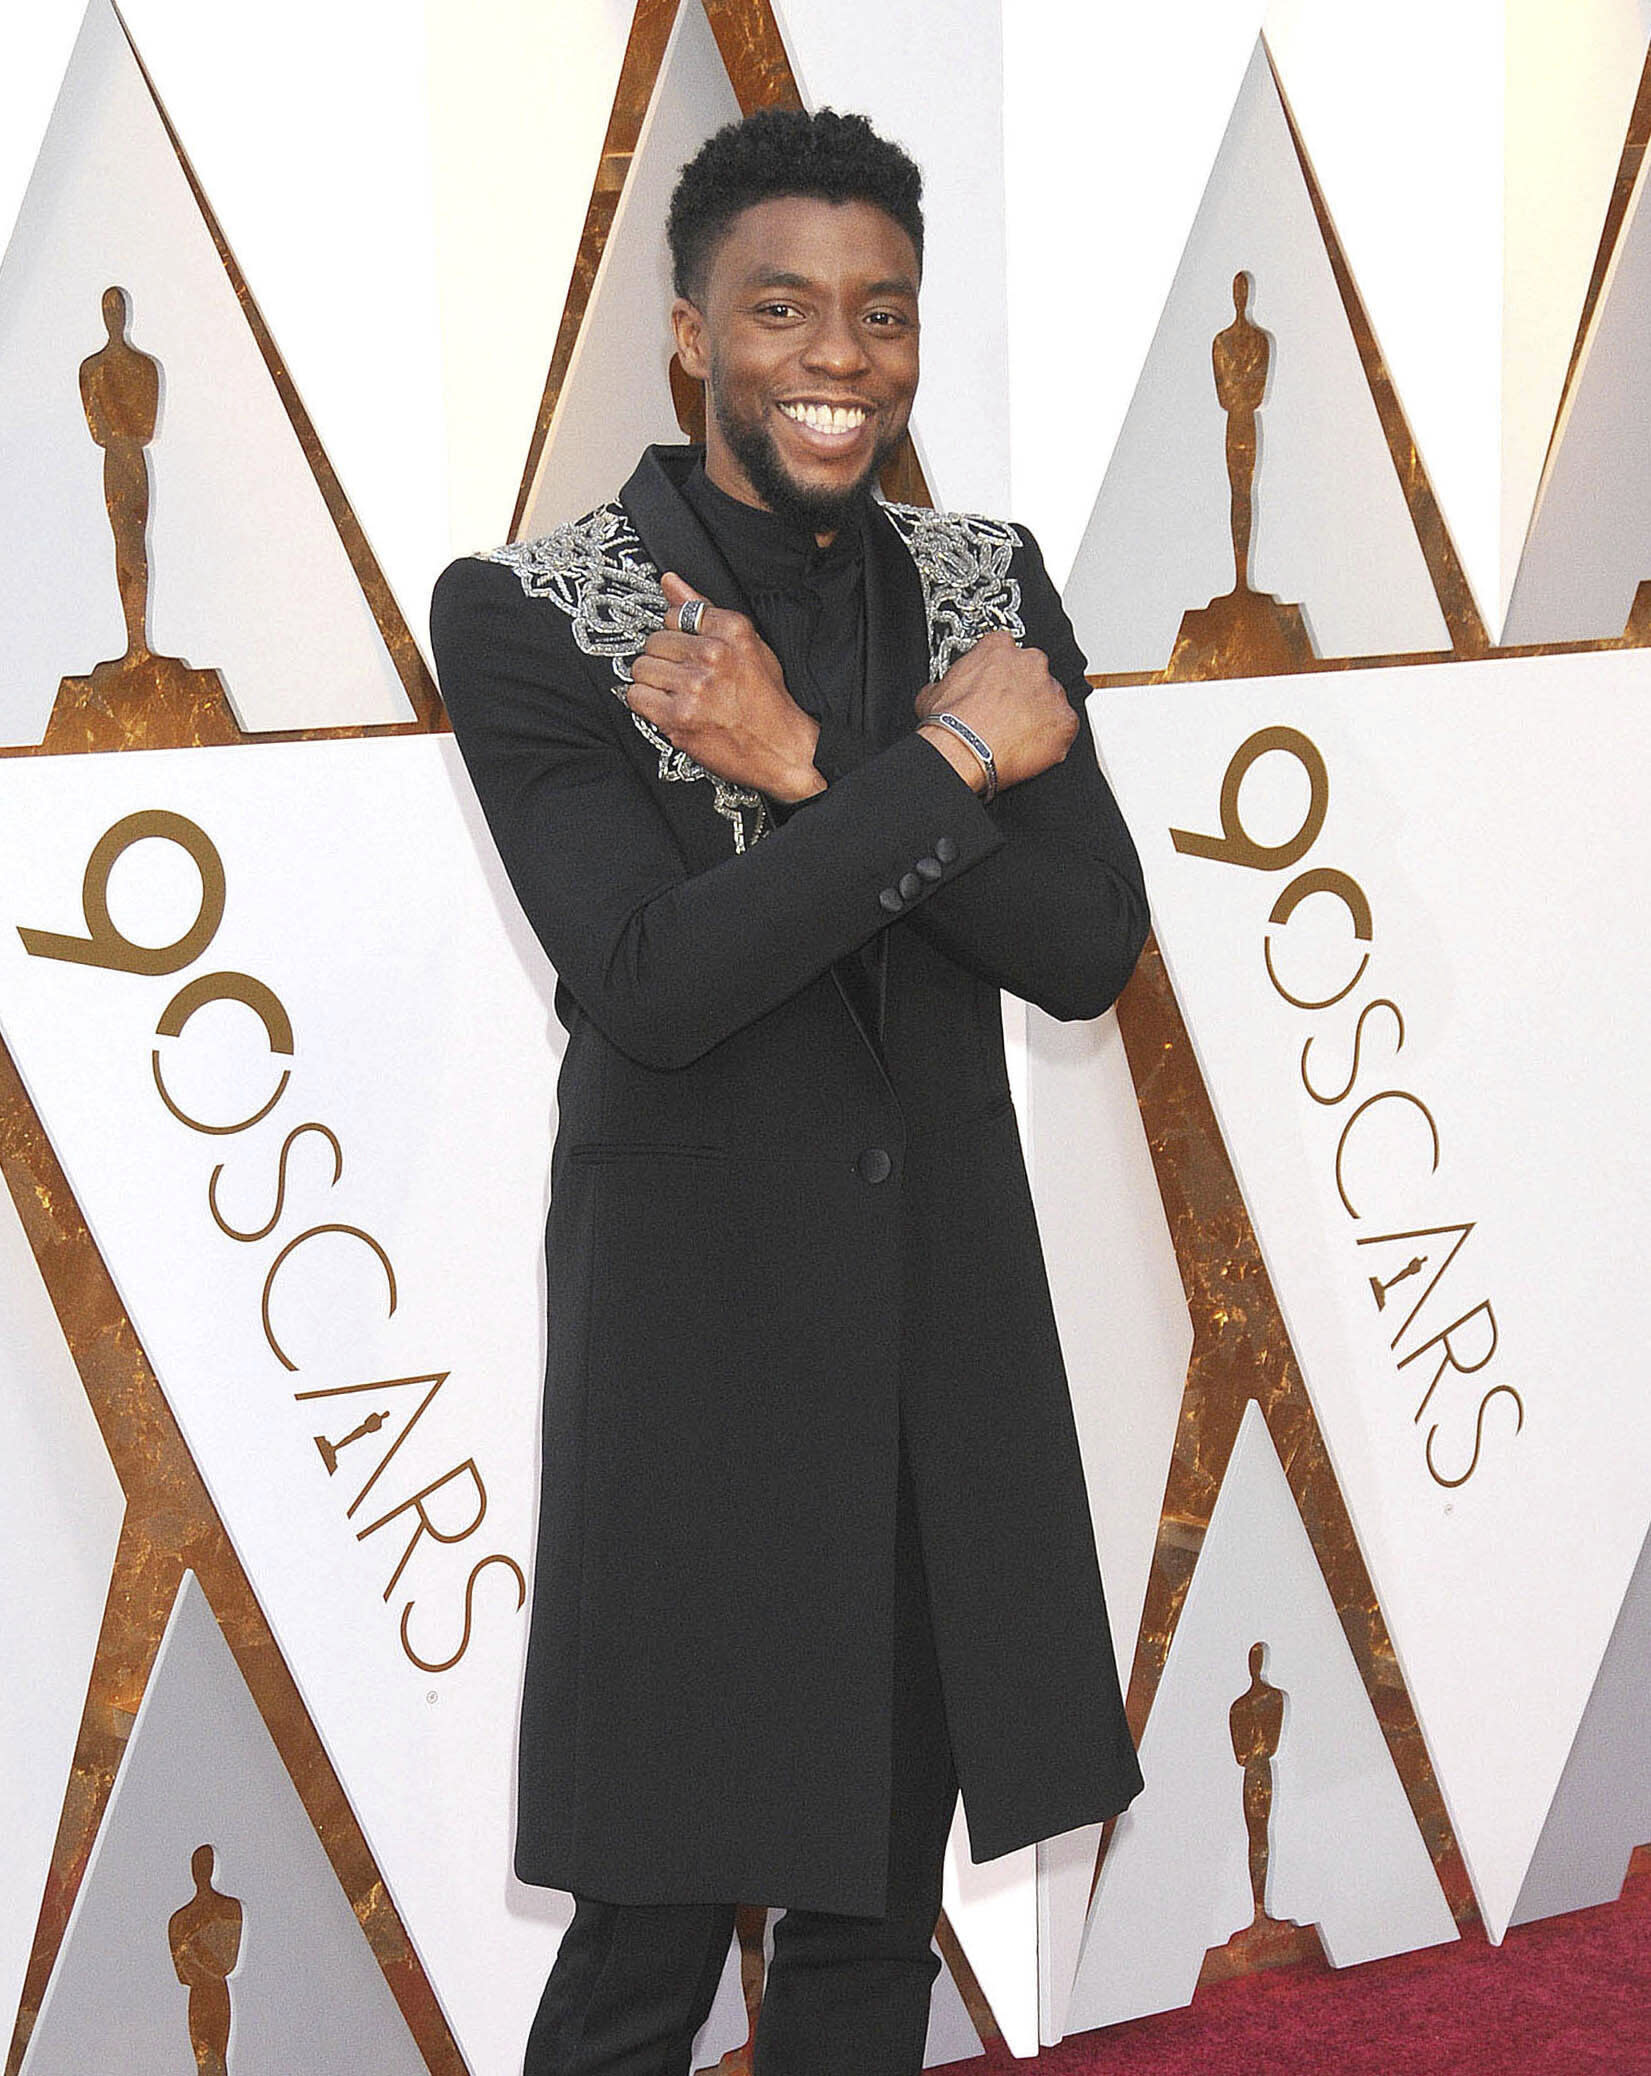 Photo by: Galaxy/STAR MAX/IPx 2020 8/29/20 Chadwick Boseman, star of 'The Black Panther', has passed away at 43 of Colon Cancer. STAR MAX File Photo: 3/4/18 Chadwick Boseman at the 90th Annual Academy Awards (Oscars) presented by the Academy of Motion Picture Arts and Sciences. (Hollywood, CA, USA)